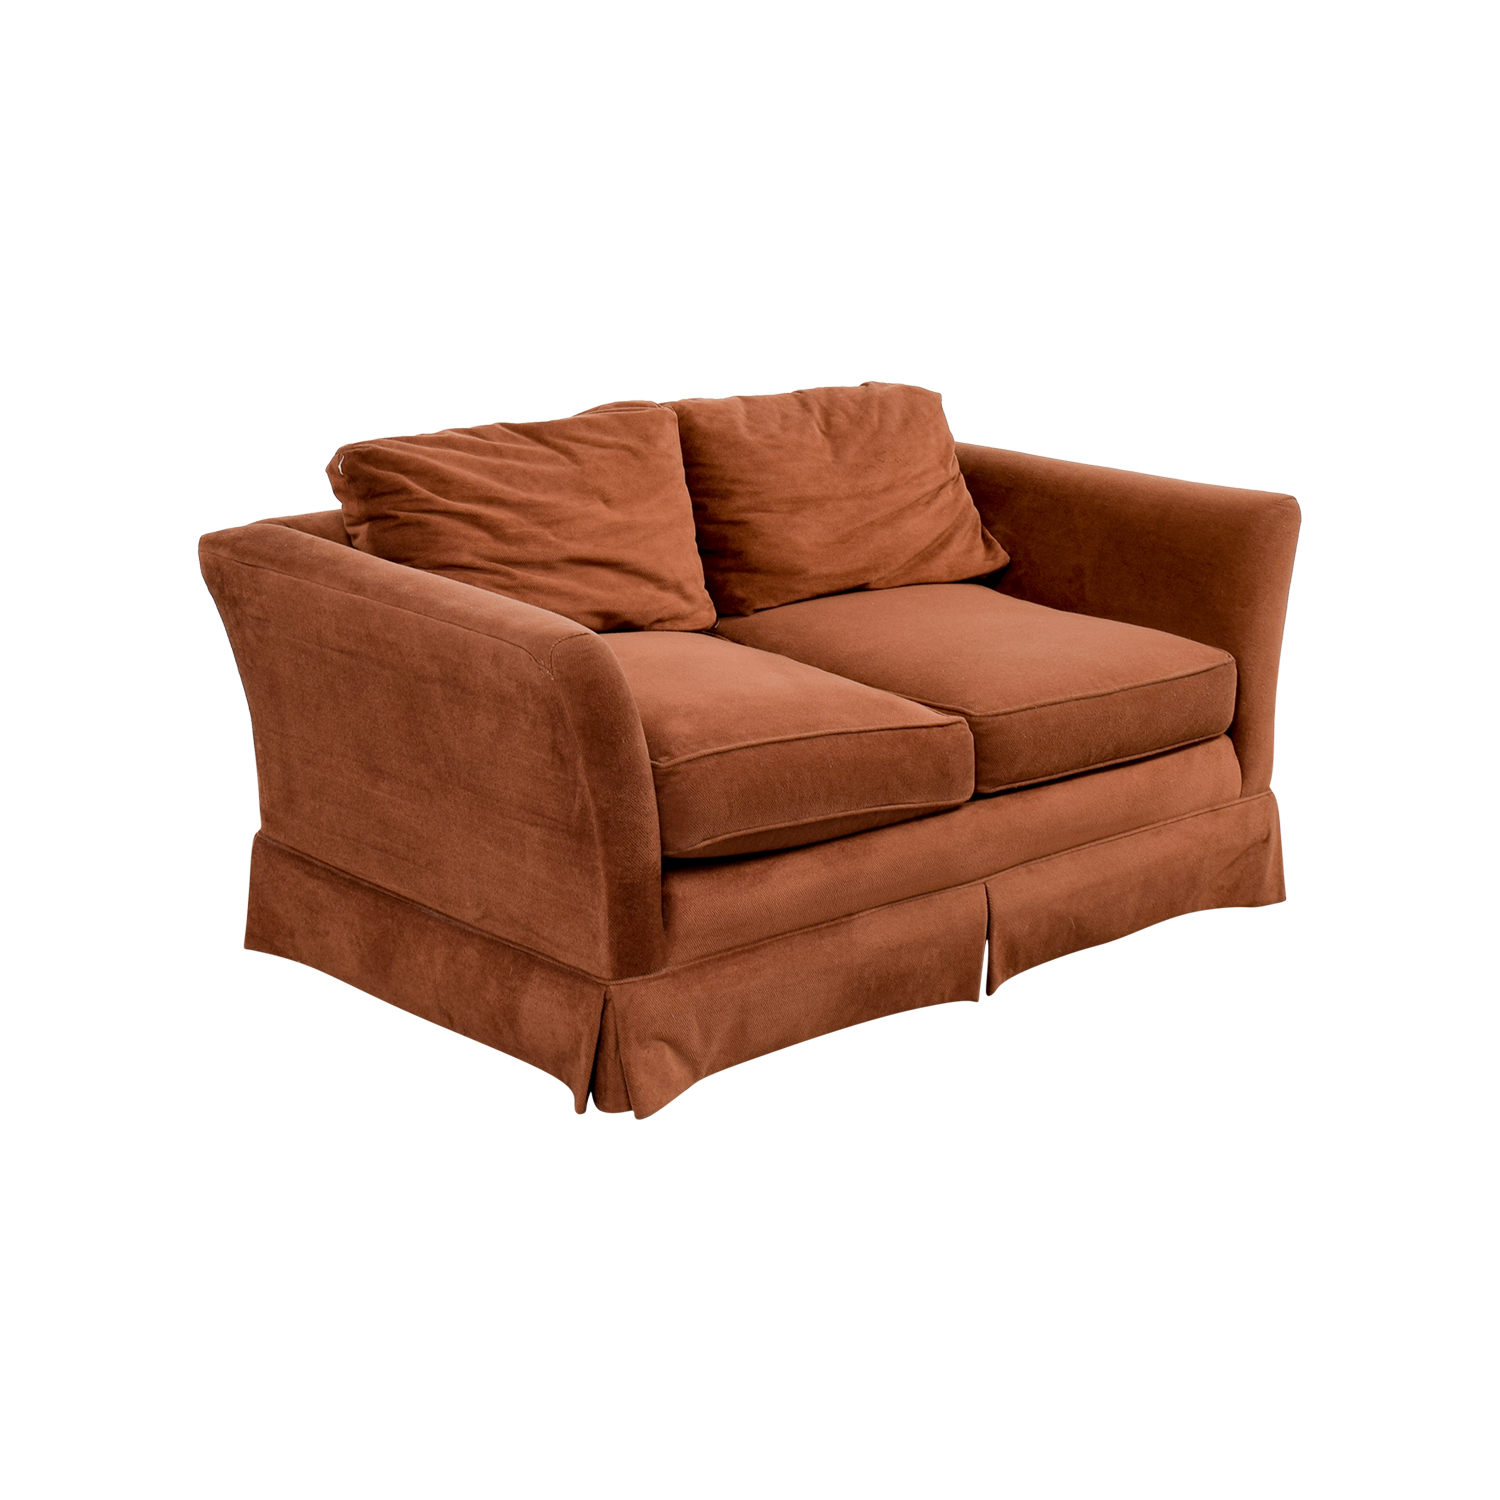 58% OFF Macys Macy s Small Brown Loveseat Sofas